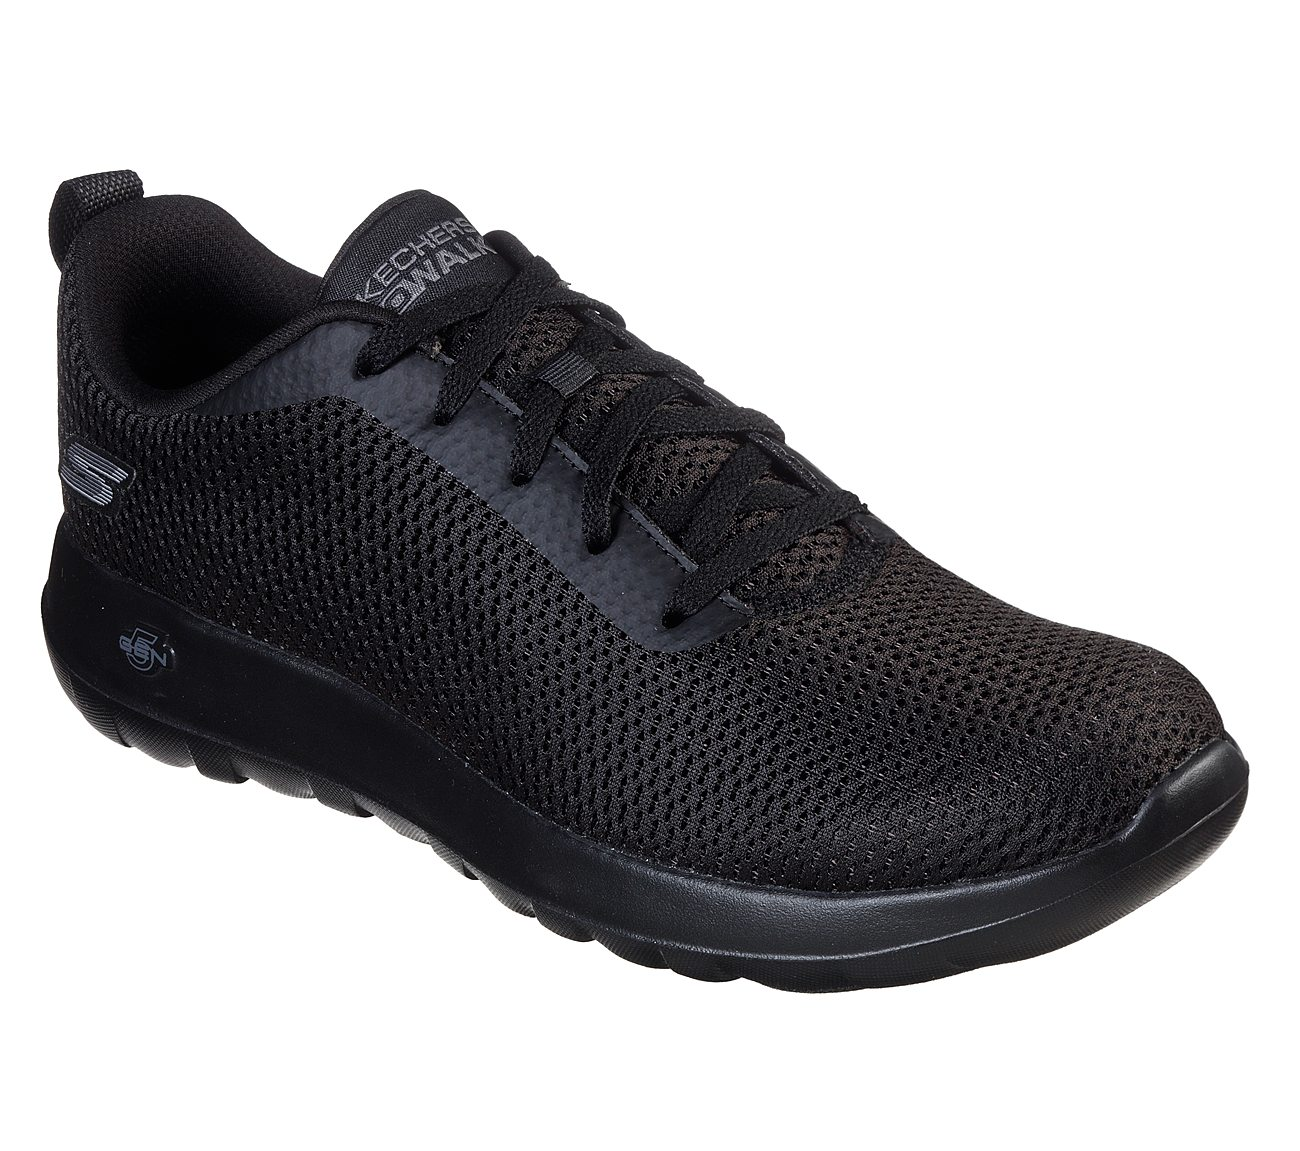 e4a9a895b949e Buy SKECHERS Skechers GOwalk Max Skechers Performance Shoes only £55.00